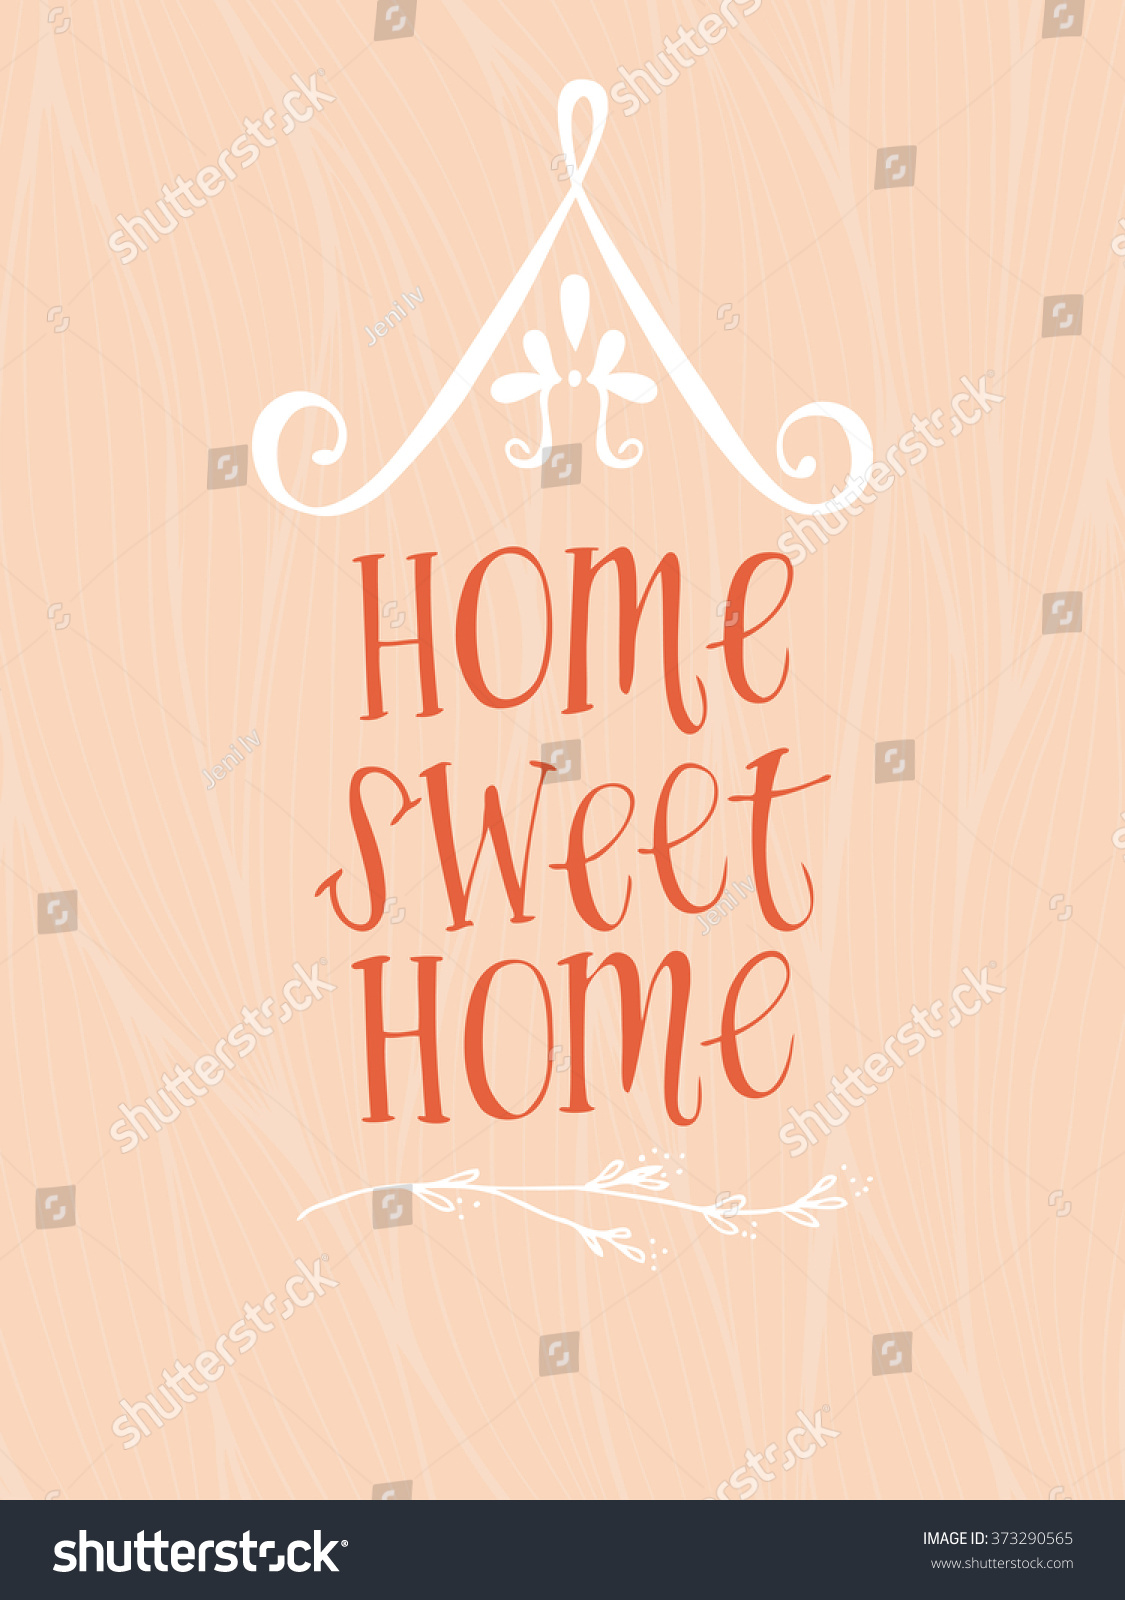 Home Sweet Home Tshirt Design Postcard Stock Vector 373290565 ...